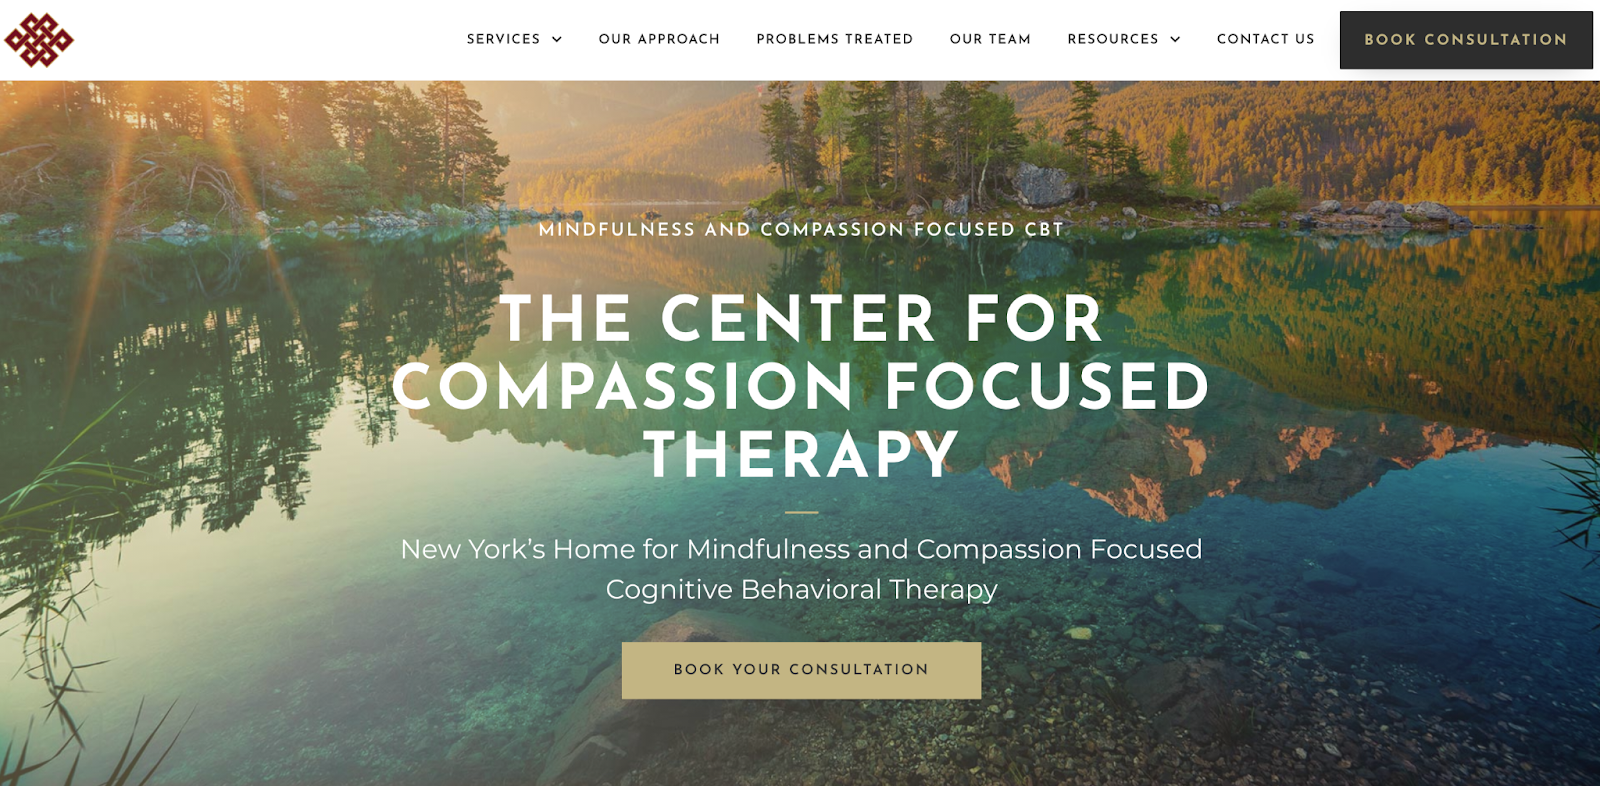 The Center For Compassion Focused Therapy Website